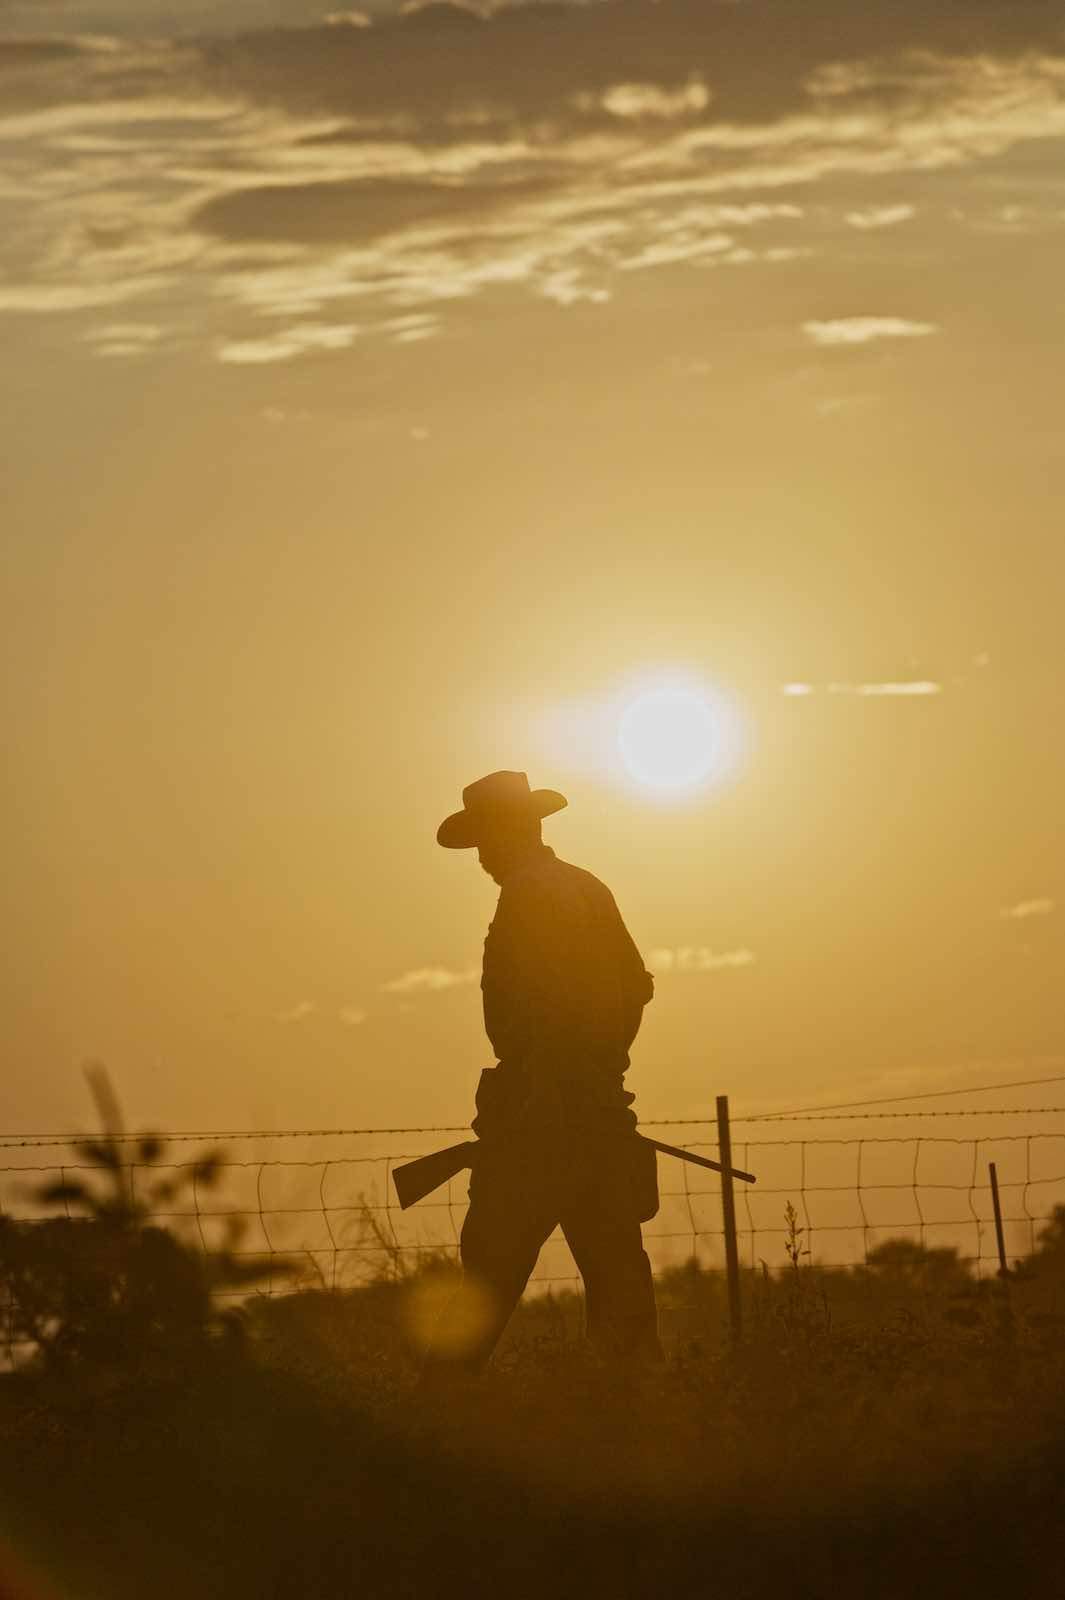 Jody Horton Photography - Hunter walking next to a wire fence at sundown.